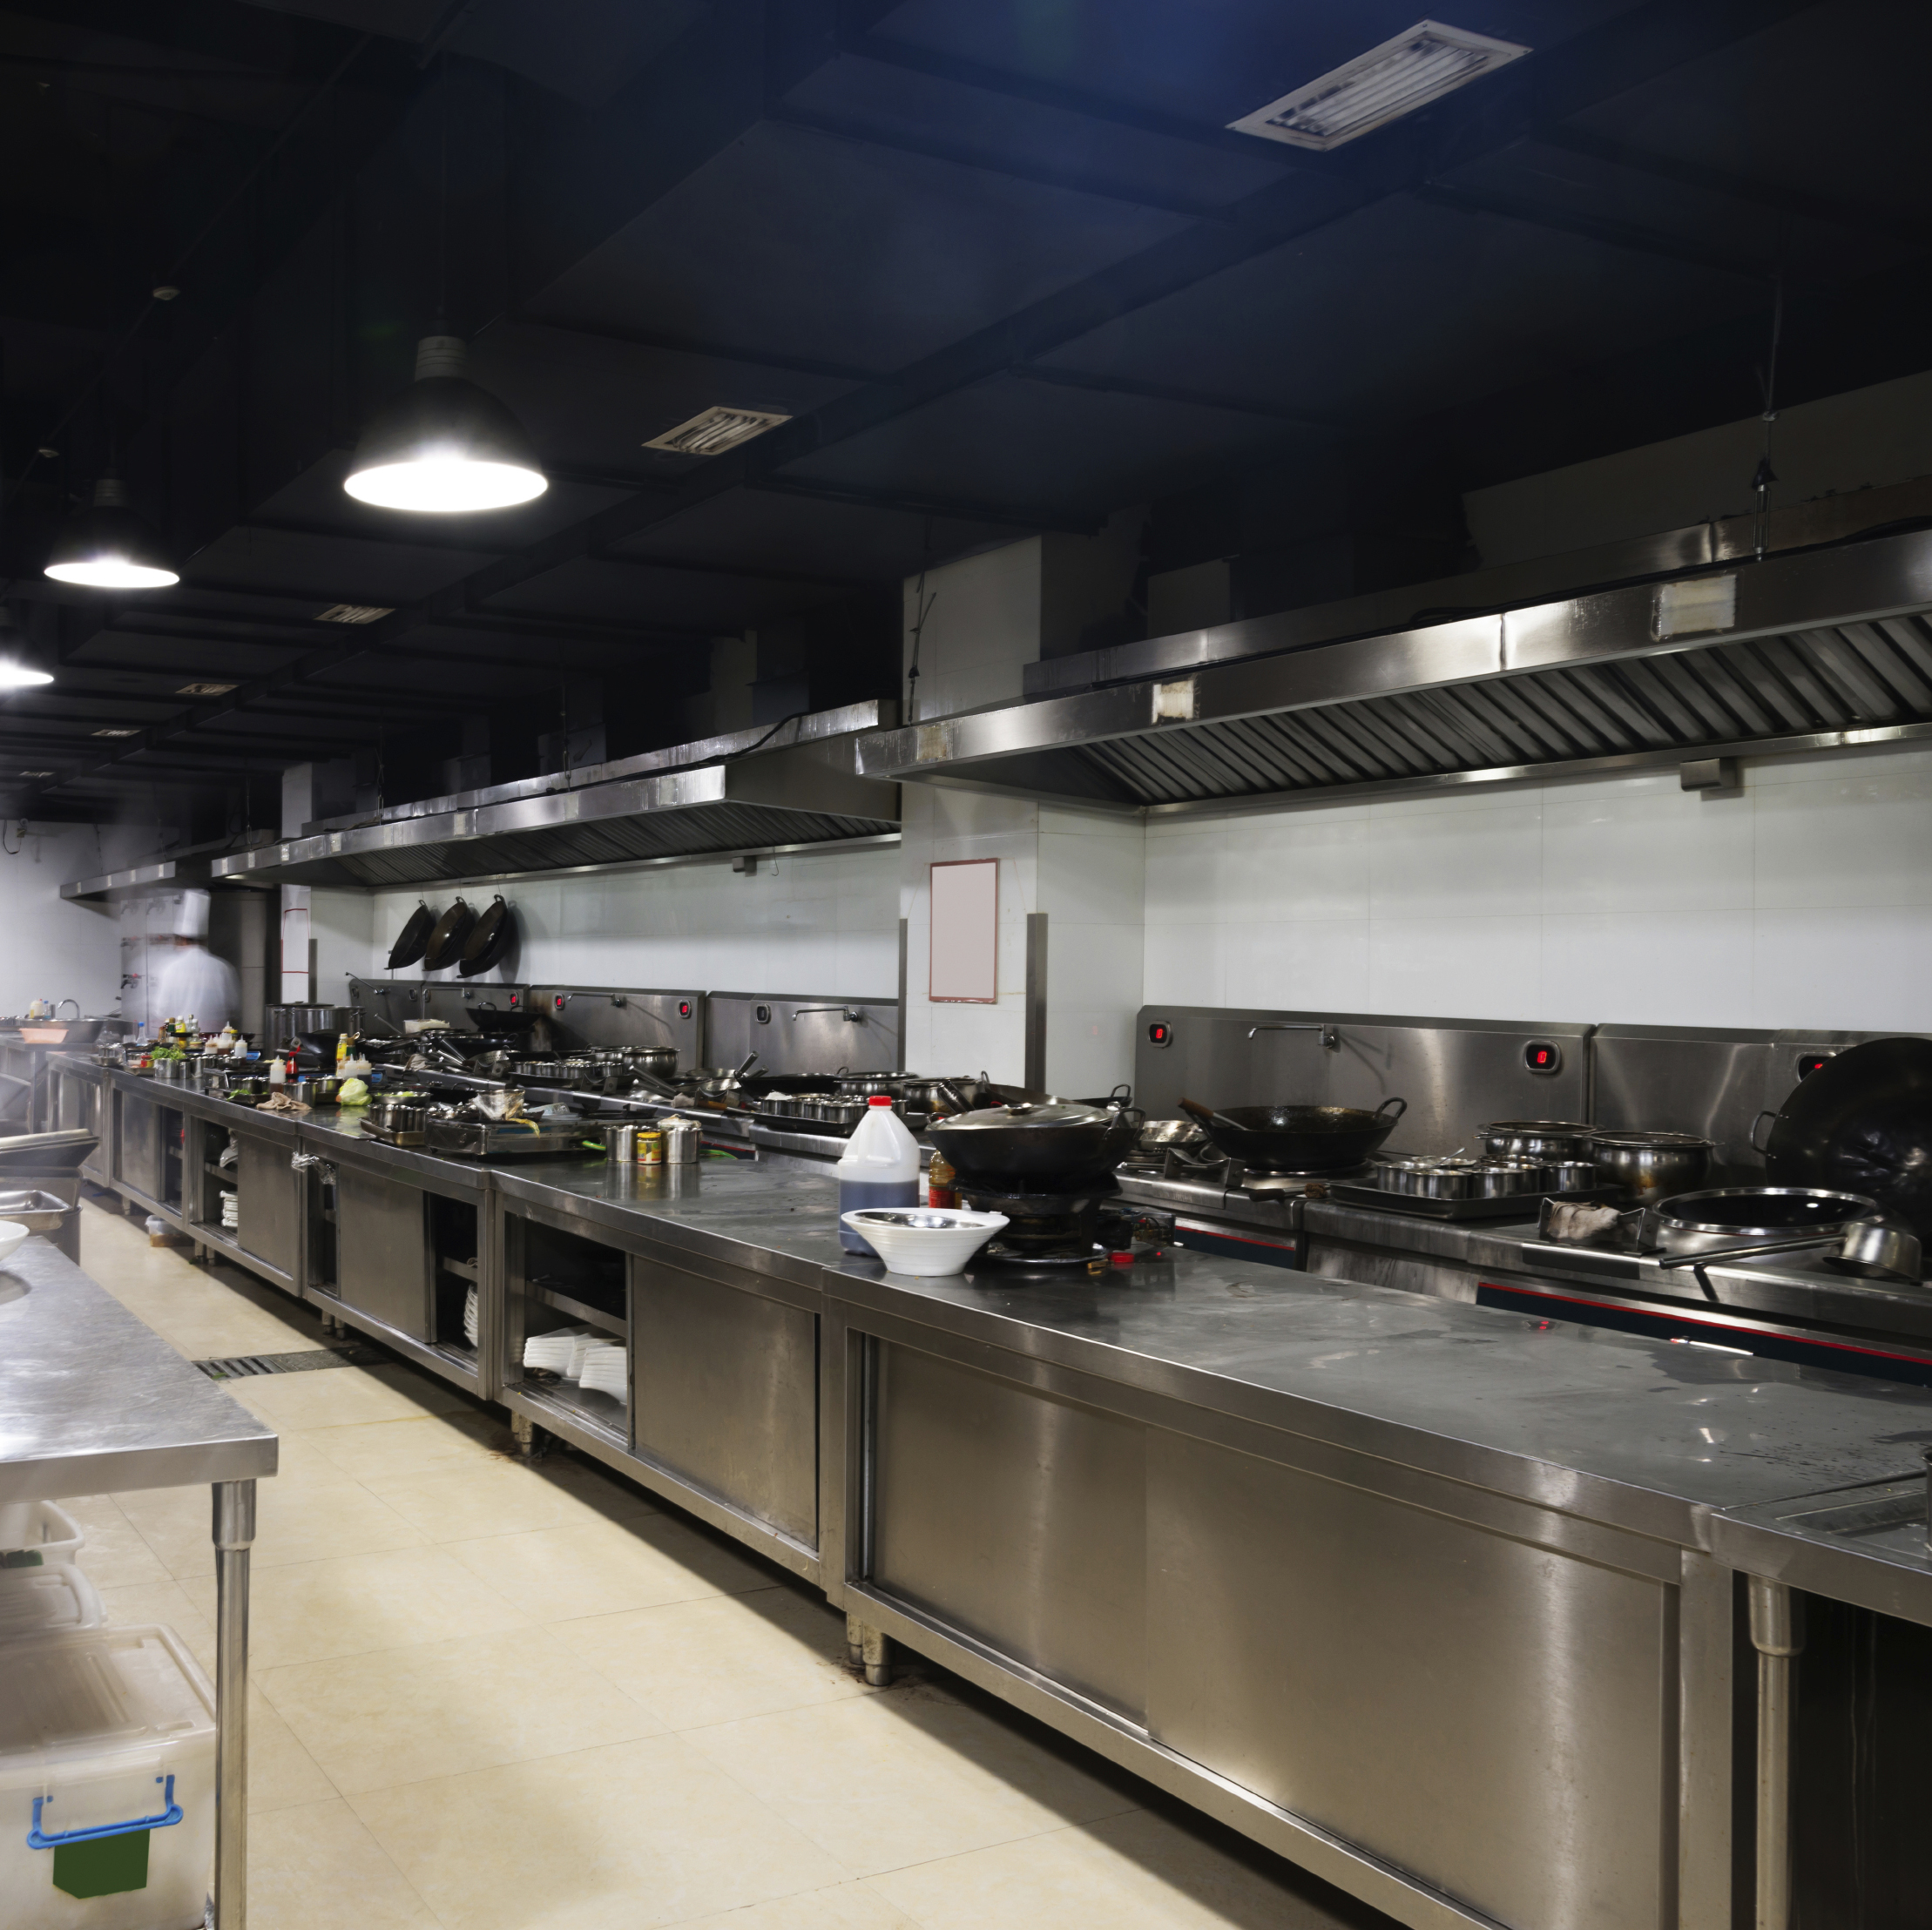 Tigerchef Offers Advice For Commercial Kitchen Equipment Maintenance